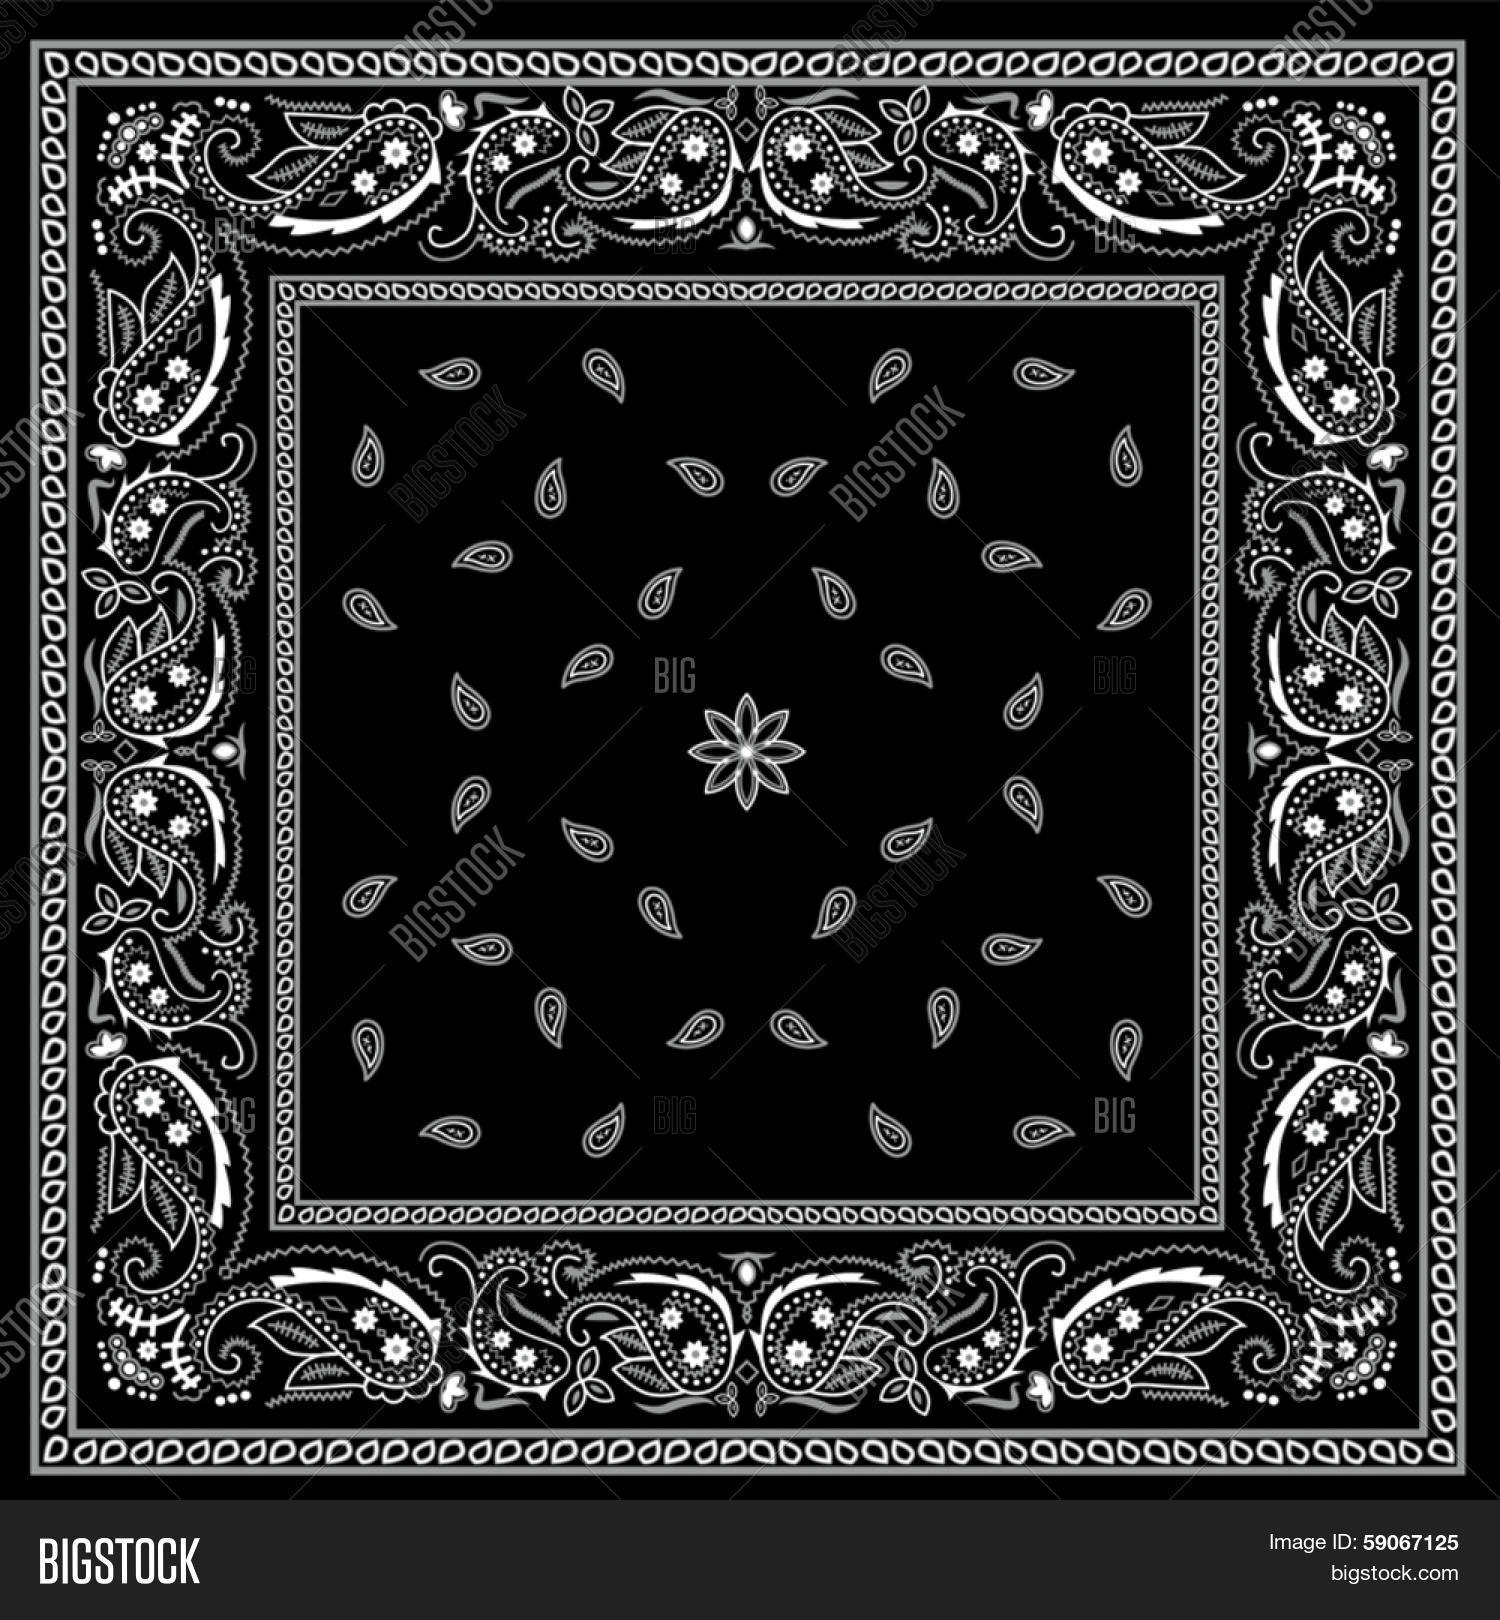 Black Bandana Pattern Vector & Photo (Free Trial) | Bigstock